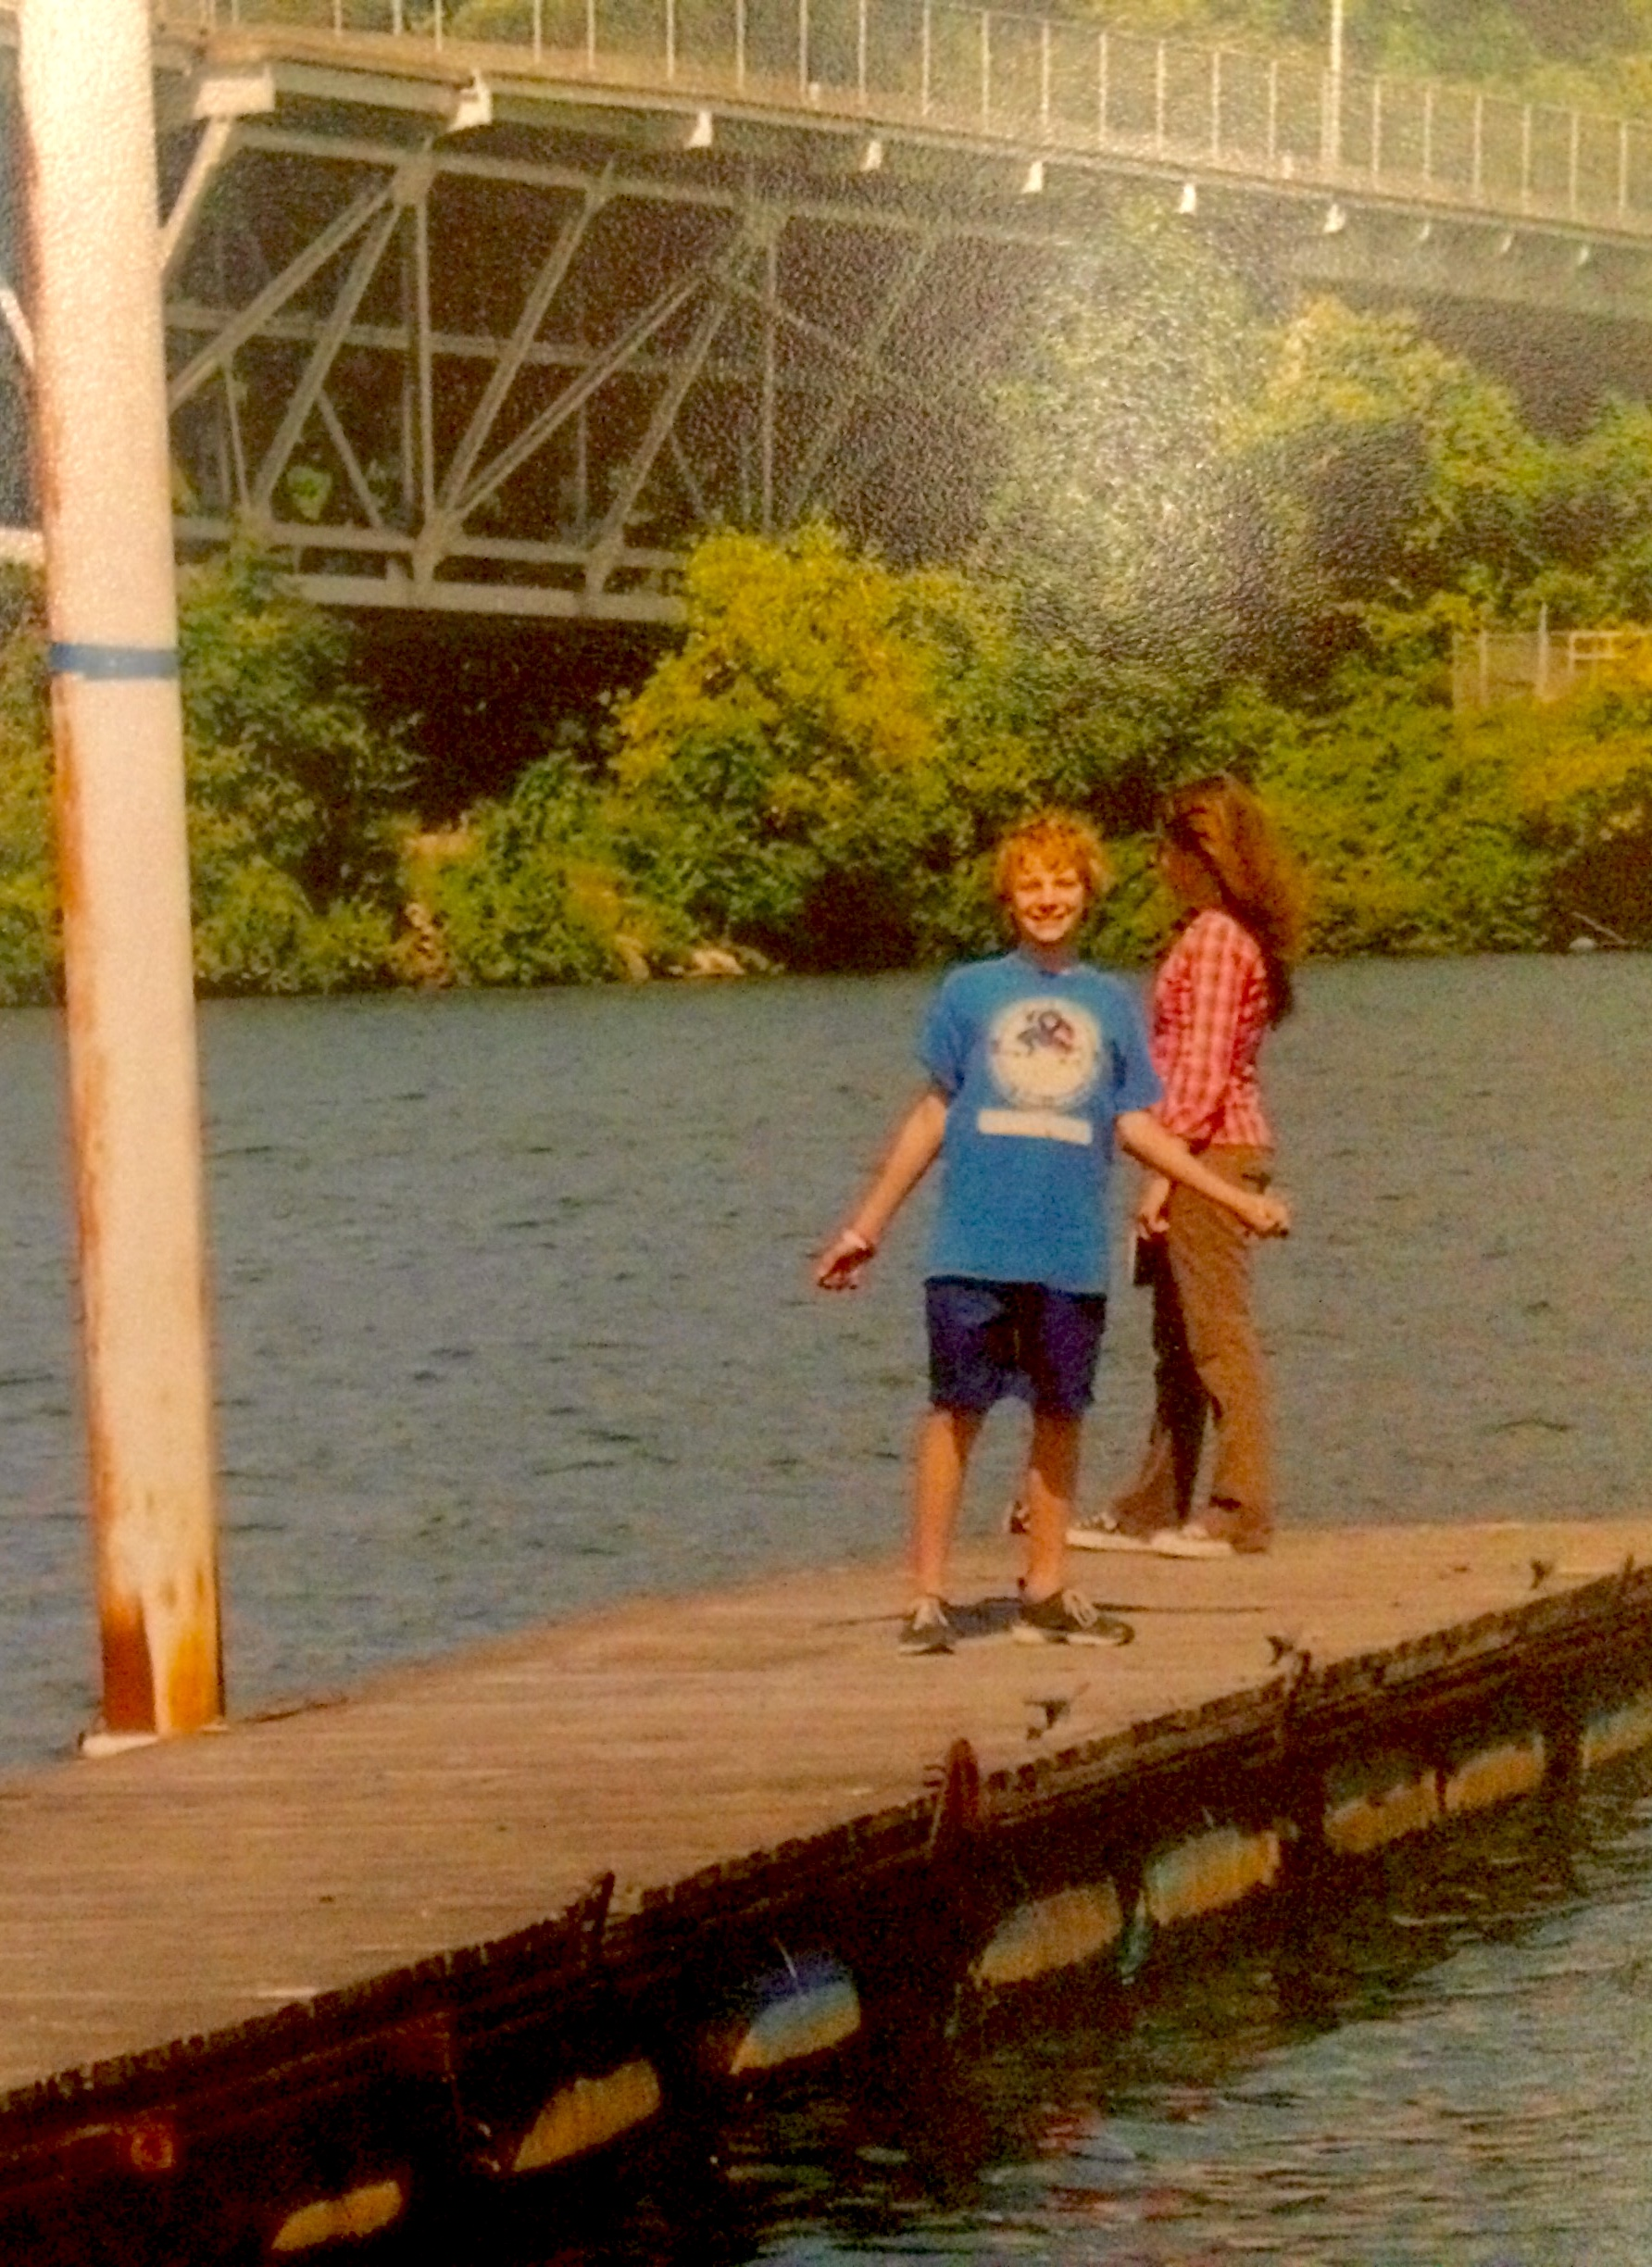 Kayla and her little brother as kids on a fishing dock.